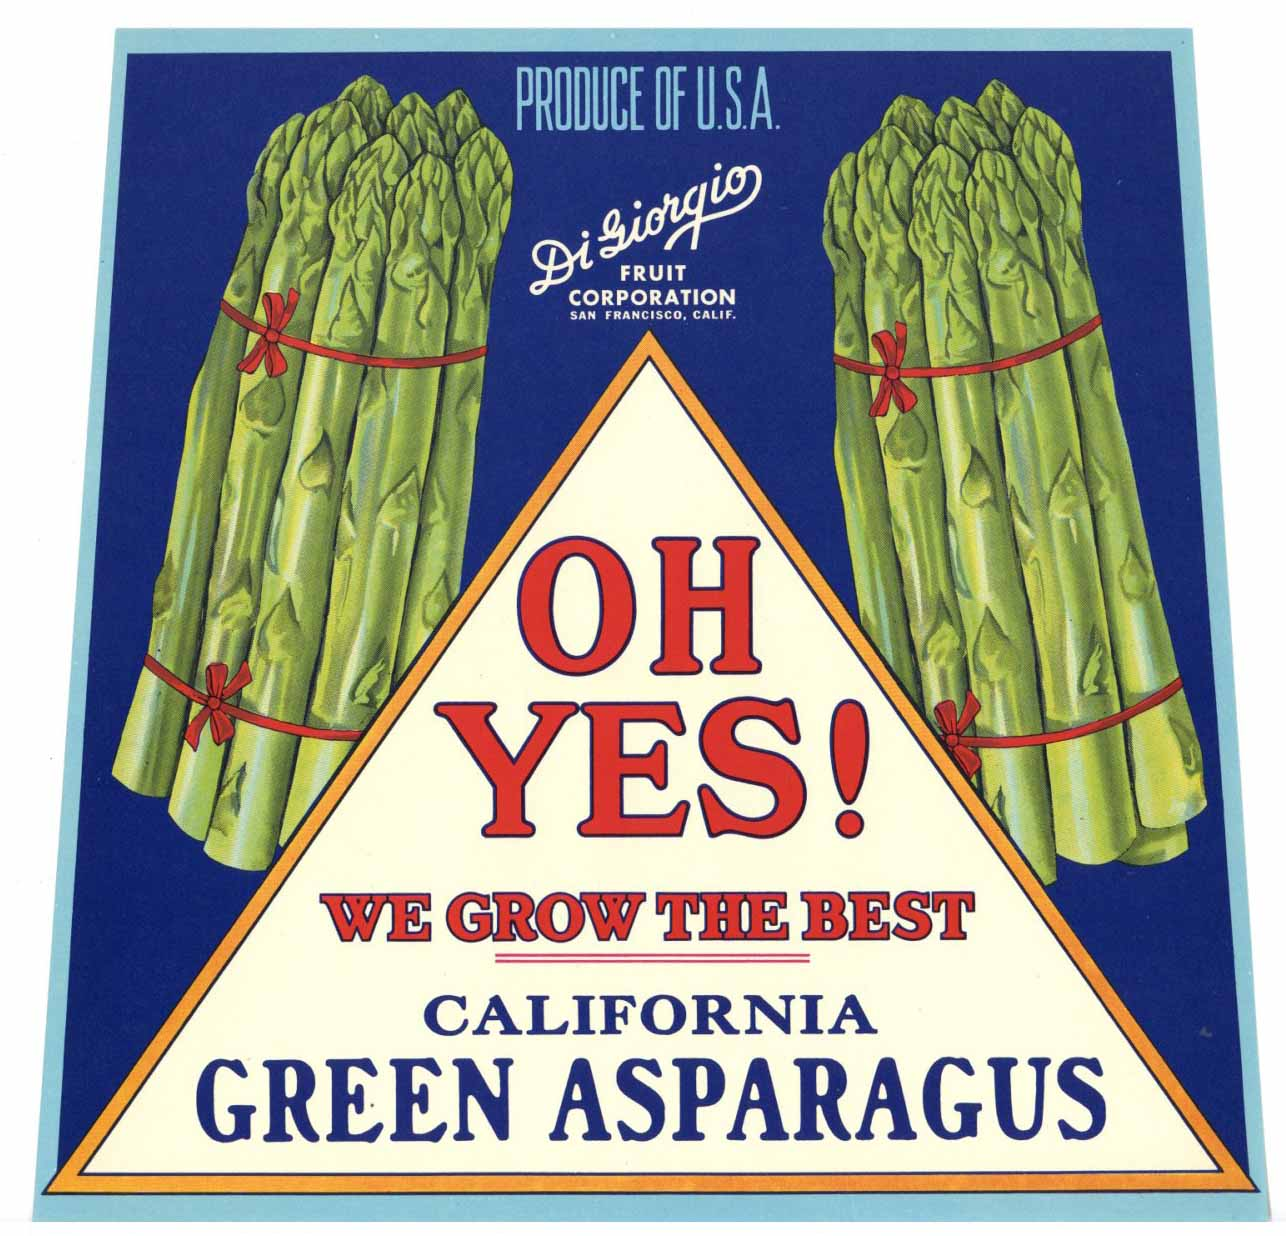 OH YES! Brand Vintage Asparagus Crate Label (ASP039)